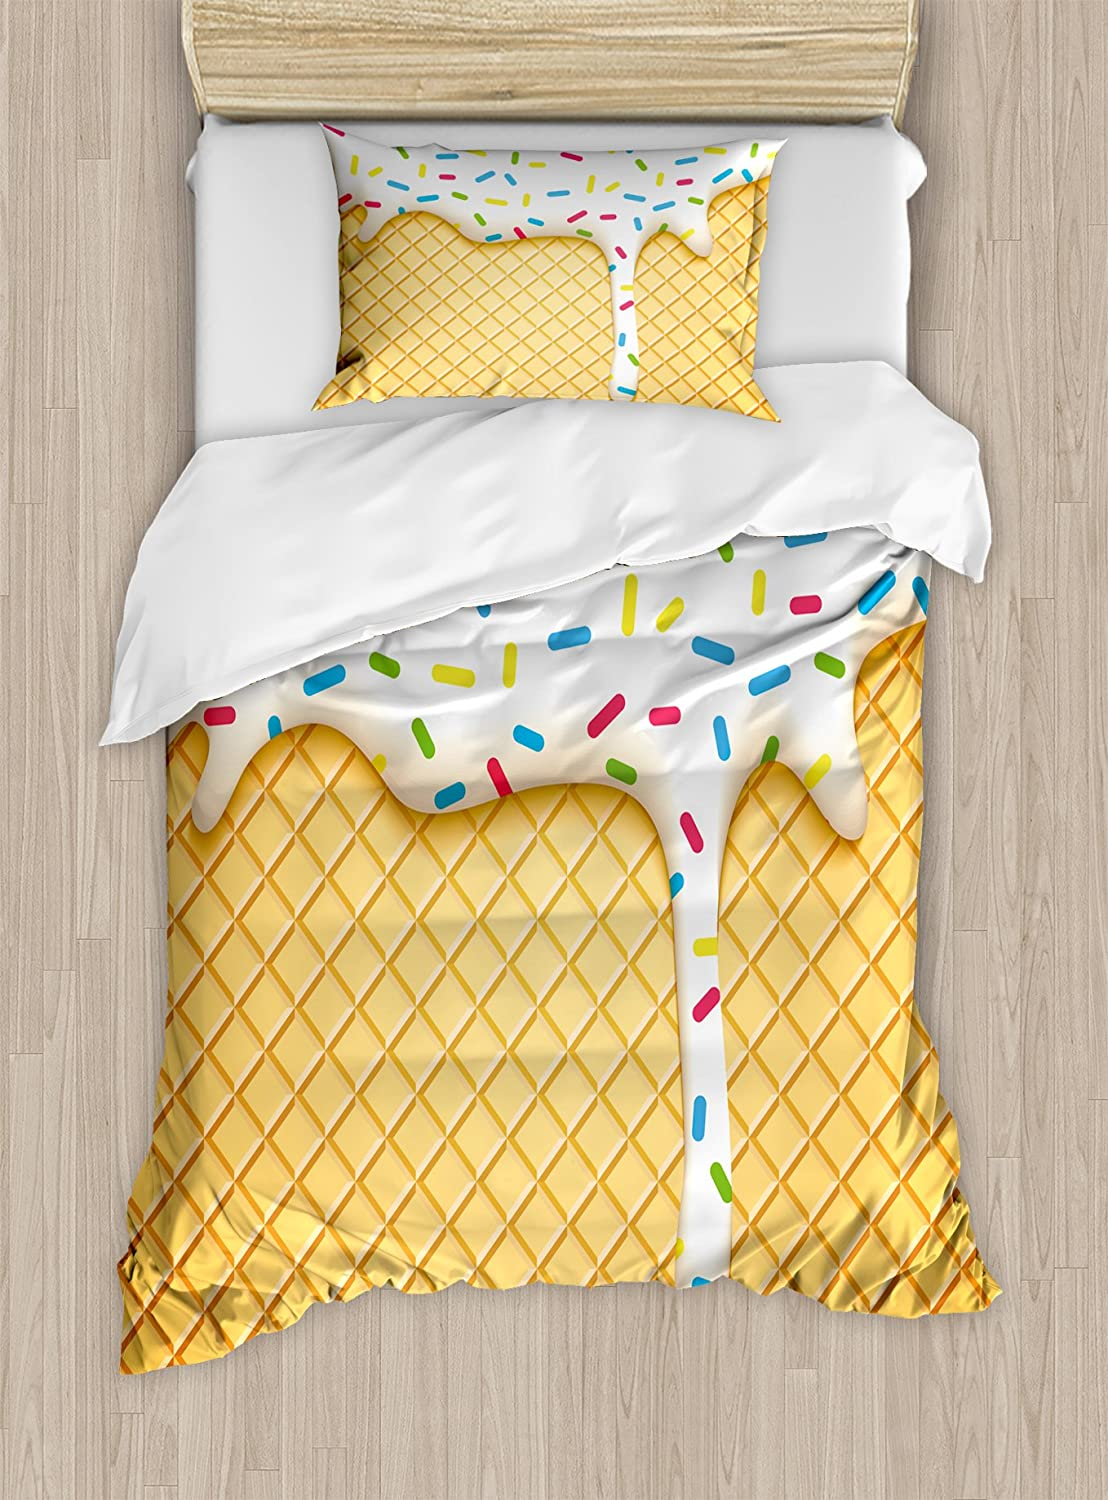 Ambesonne Food Duvet Cover Set, Cartoon Like Image of and Melting Ice Cream Cones Colored Sprinkles Print, Decorative 2 Piece Bedding Set with 1 Pillow Sham, Twin Size, Yellow White